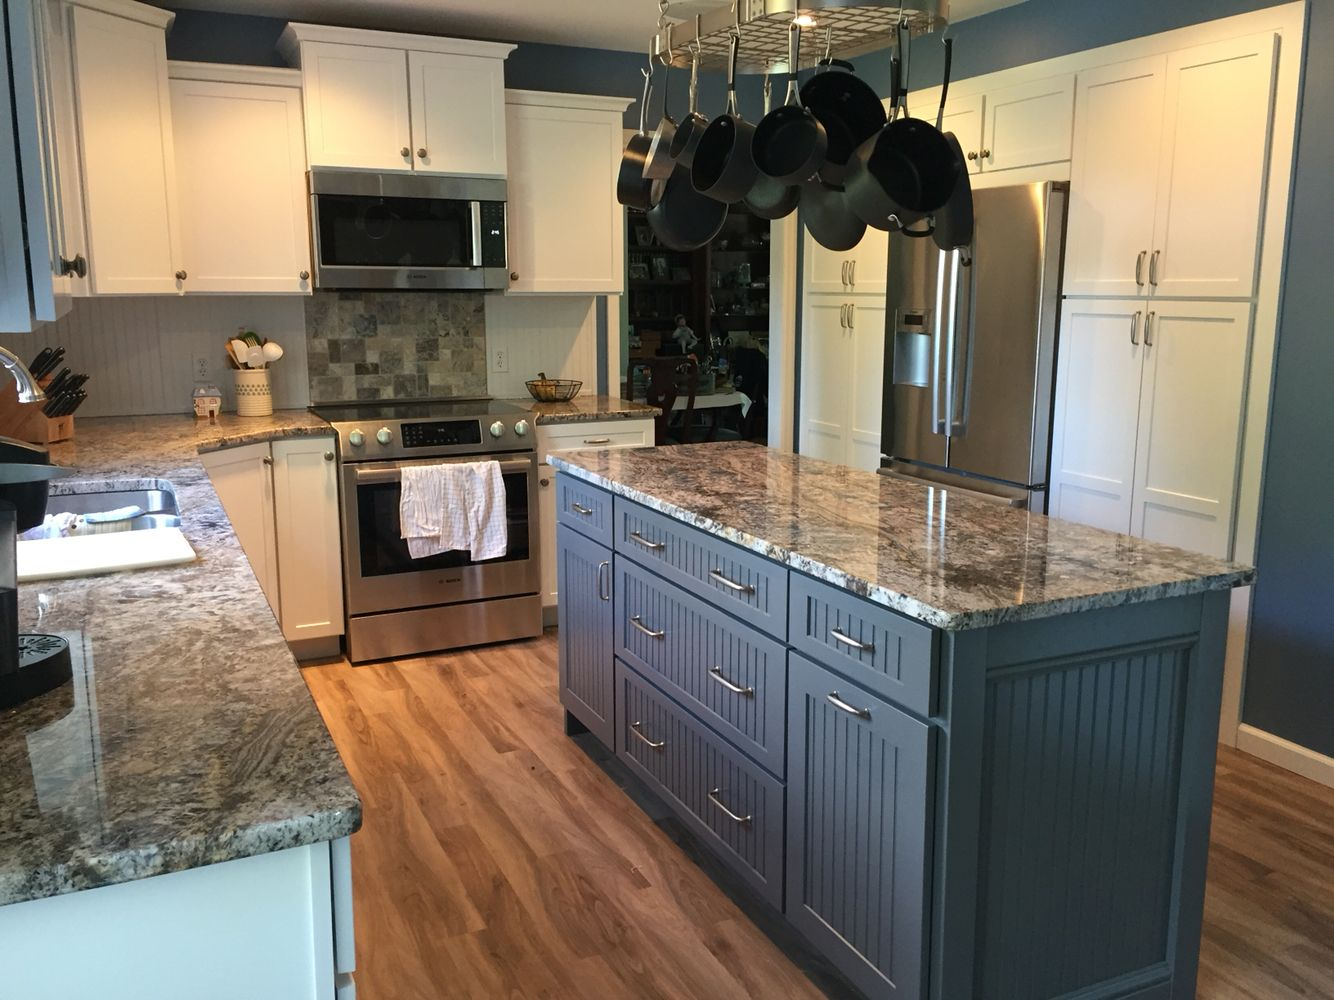 White Cabinets Set Off By Leisure Blue Sherwin Williams Paint, With A Gray  Island,